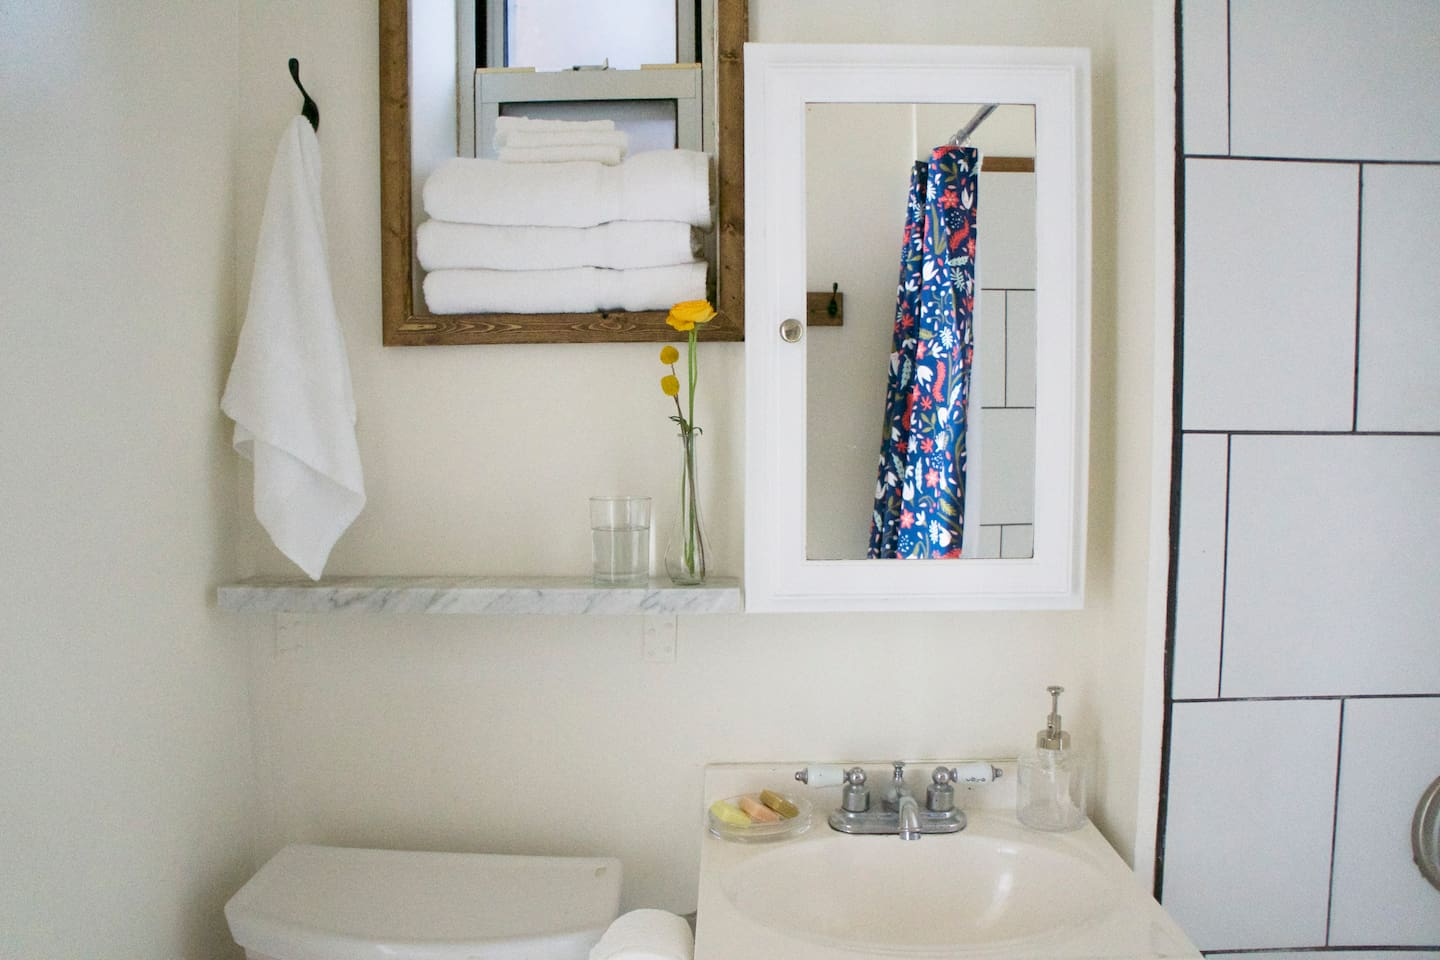 You will find fresh white linens, shampoo and conditioner available in the bathroom.